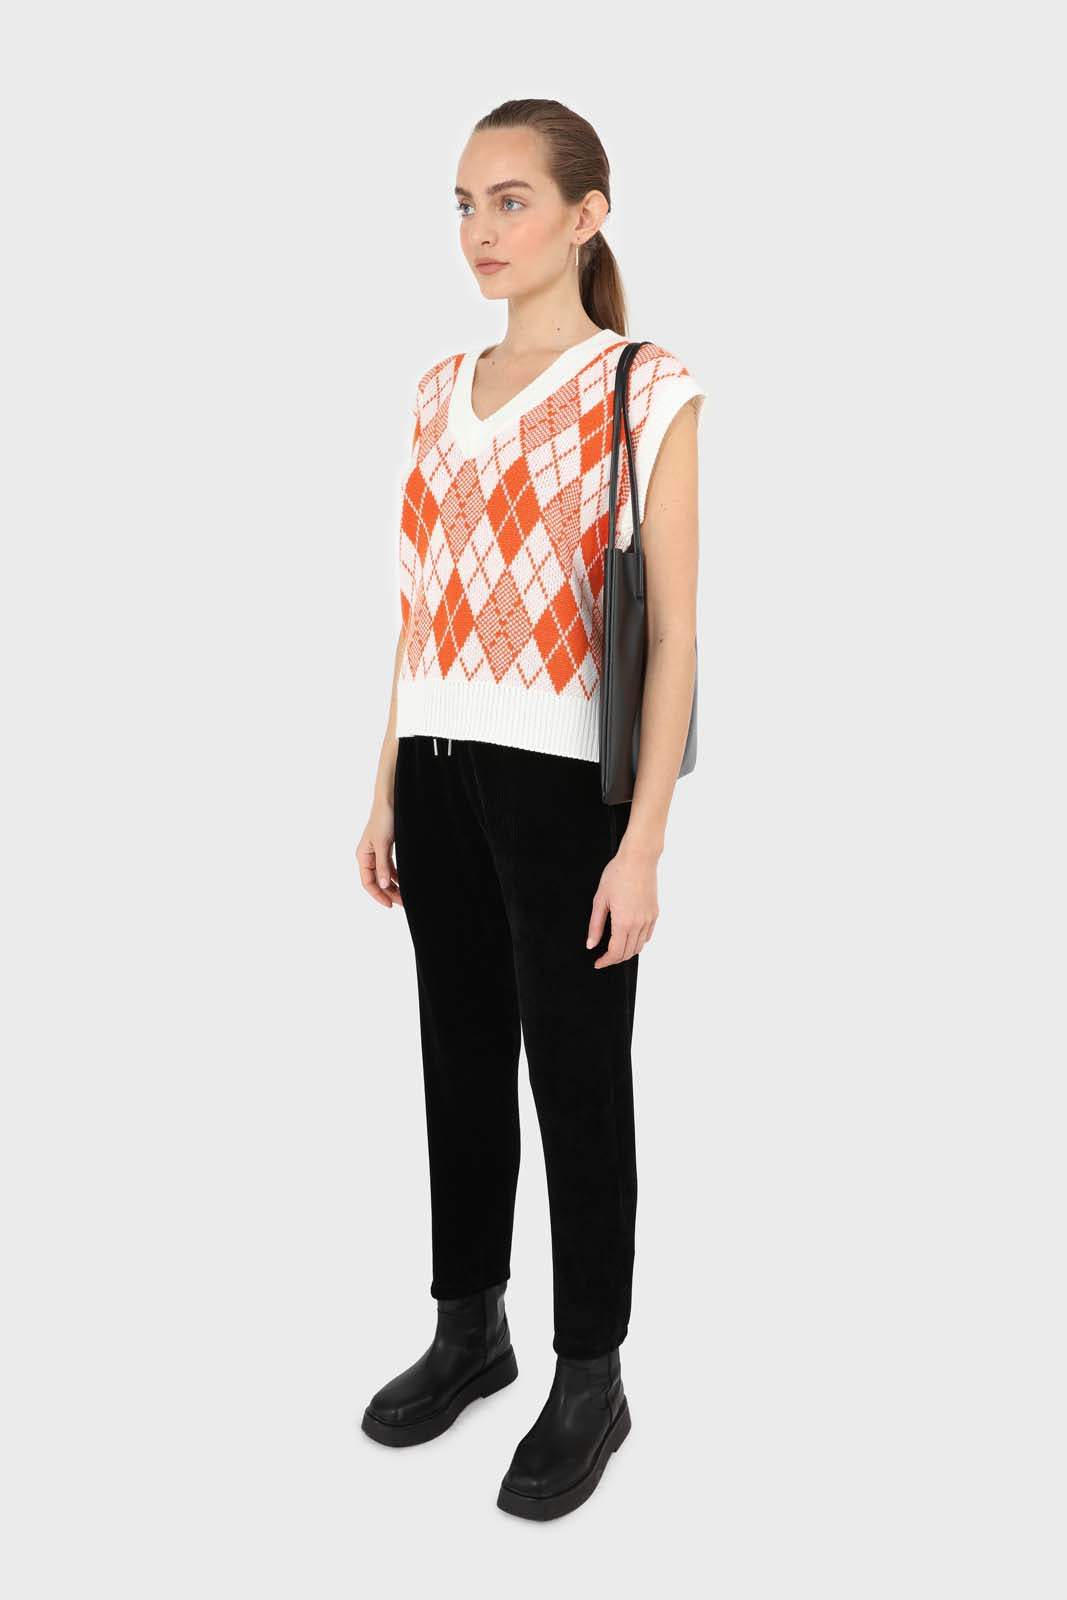 Ivory and orange bright argyle knit vest3